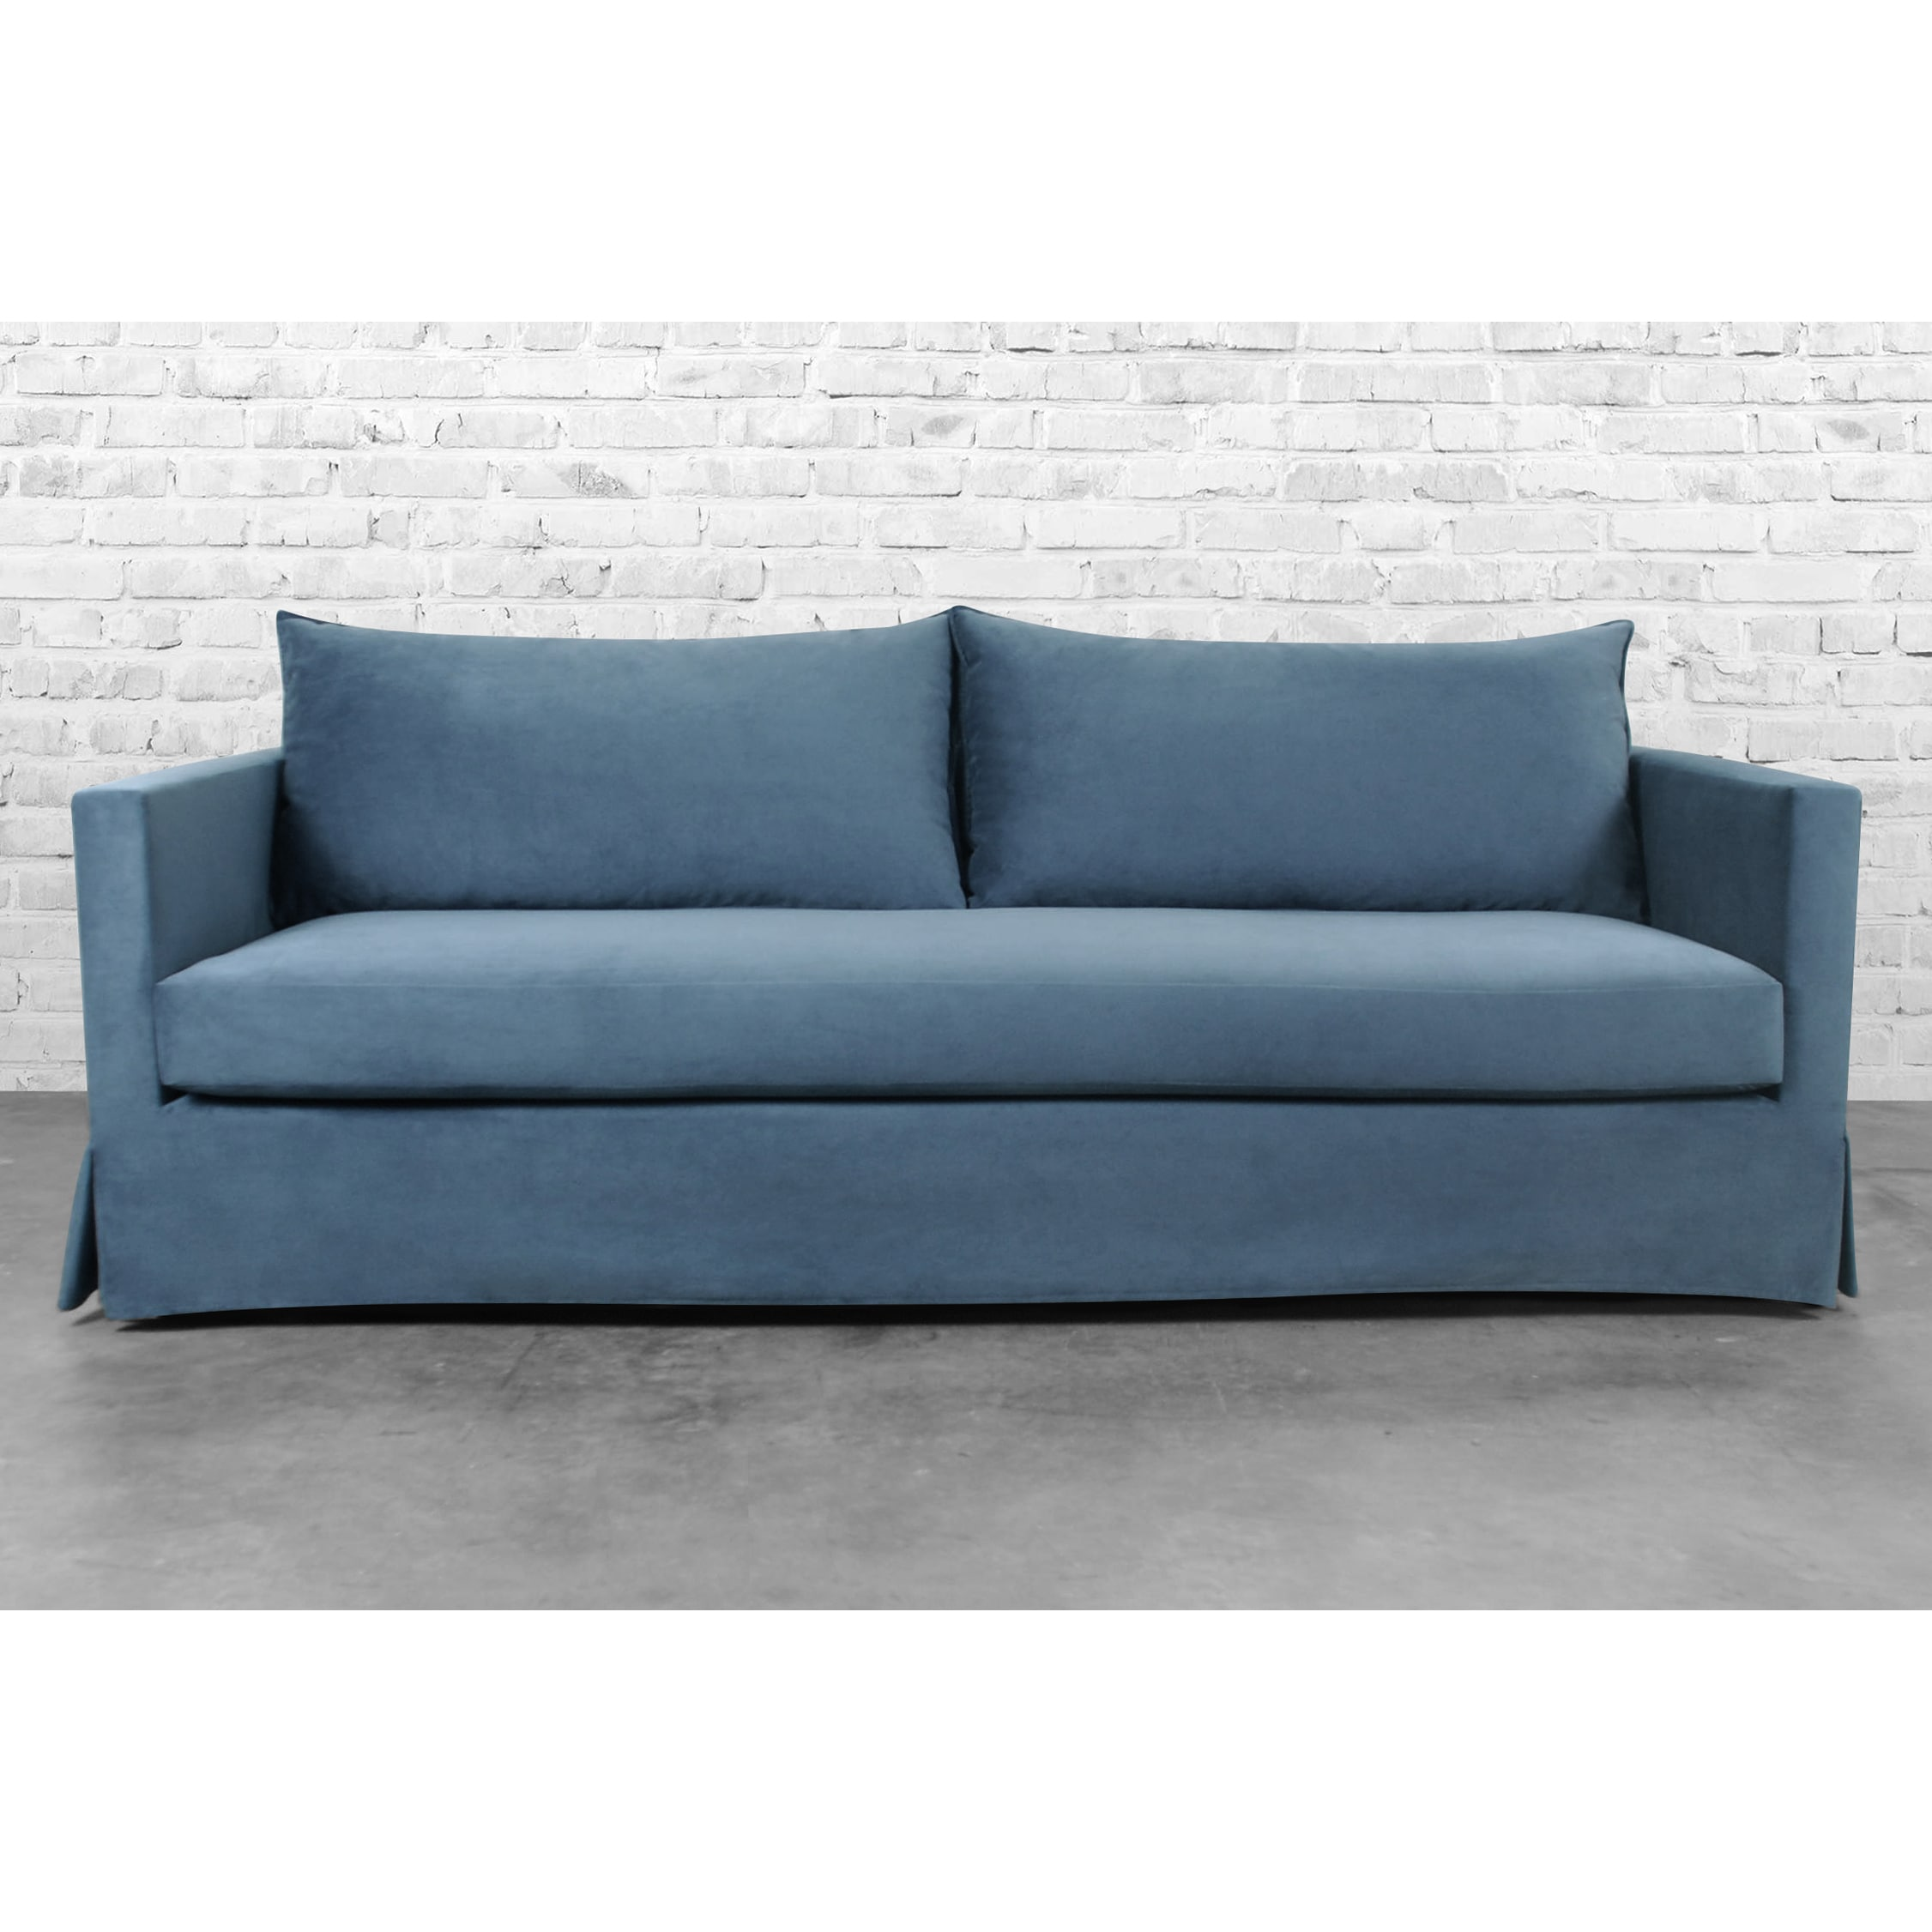 define slipcovered sofa products miles interior slipcover